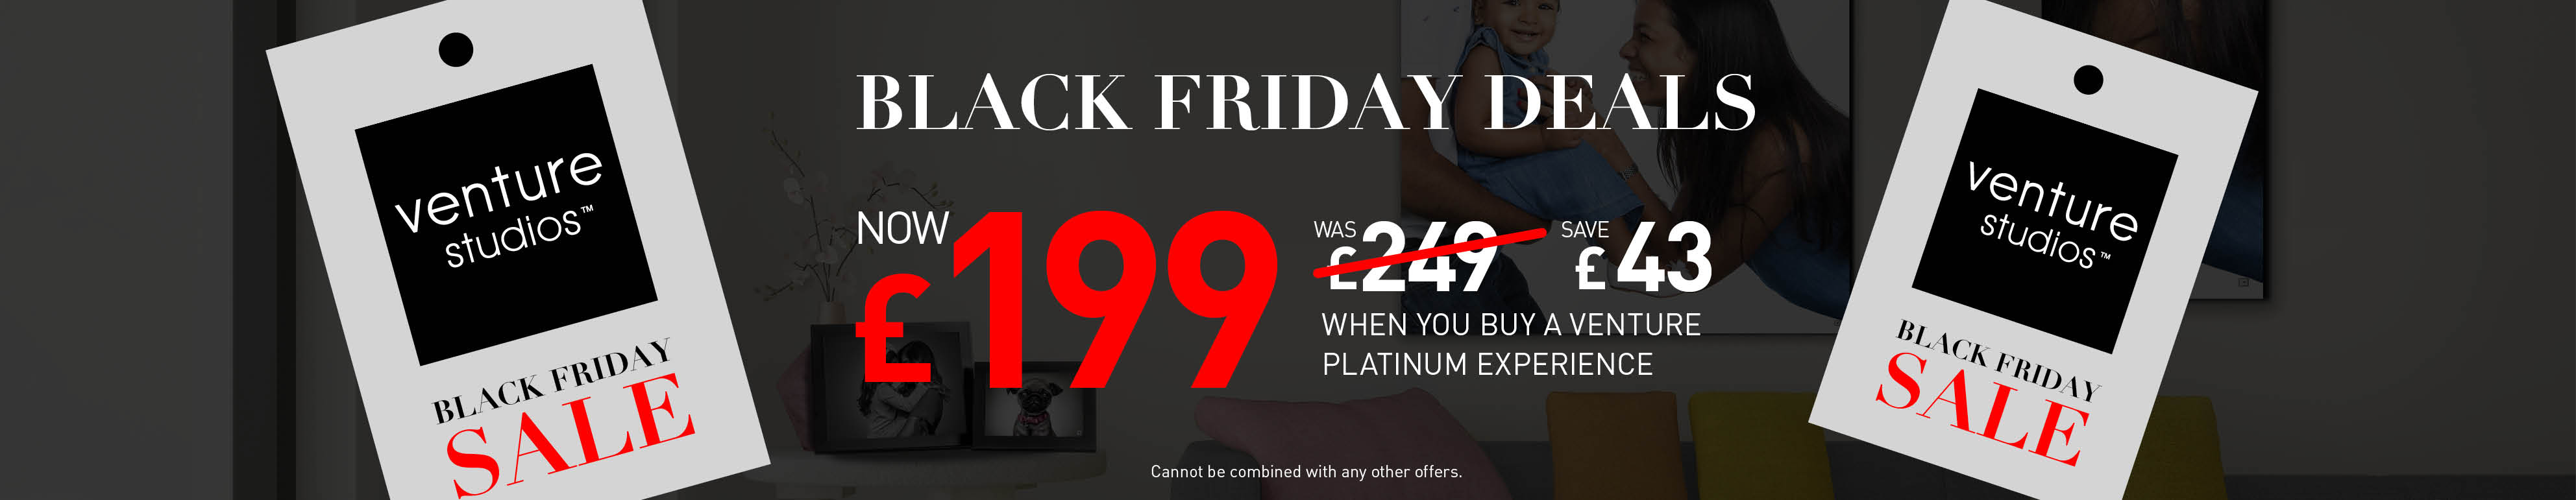 PLATINUM PHOTOGRAPHY EXPERIENCE BLACK FRIDAY